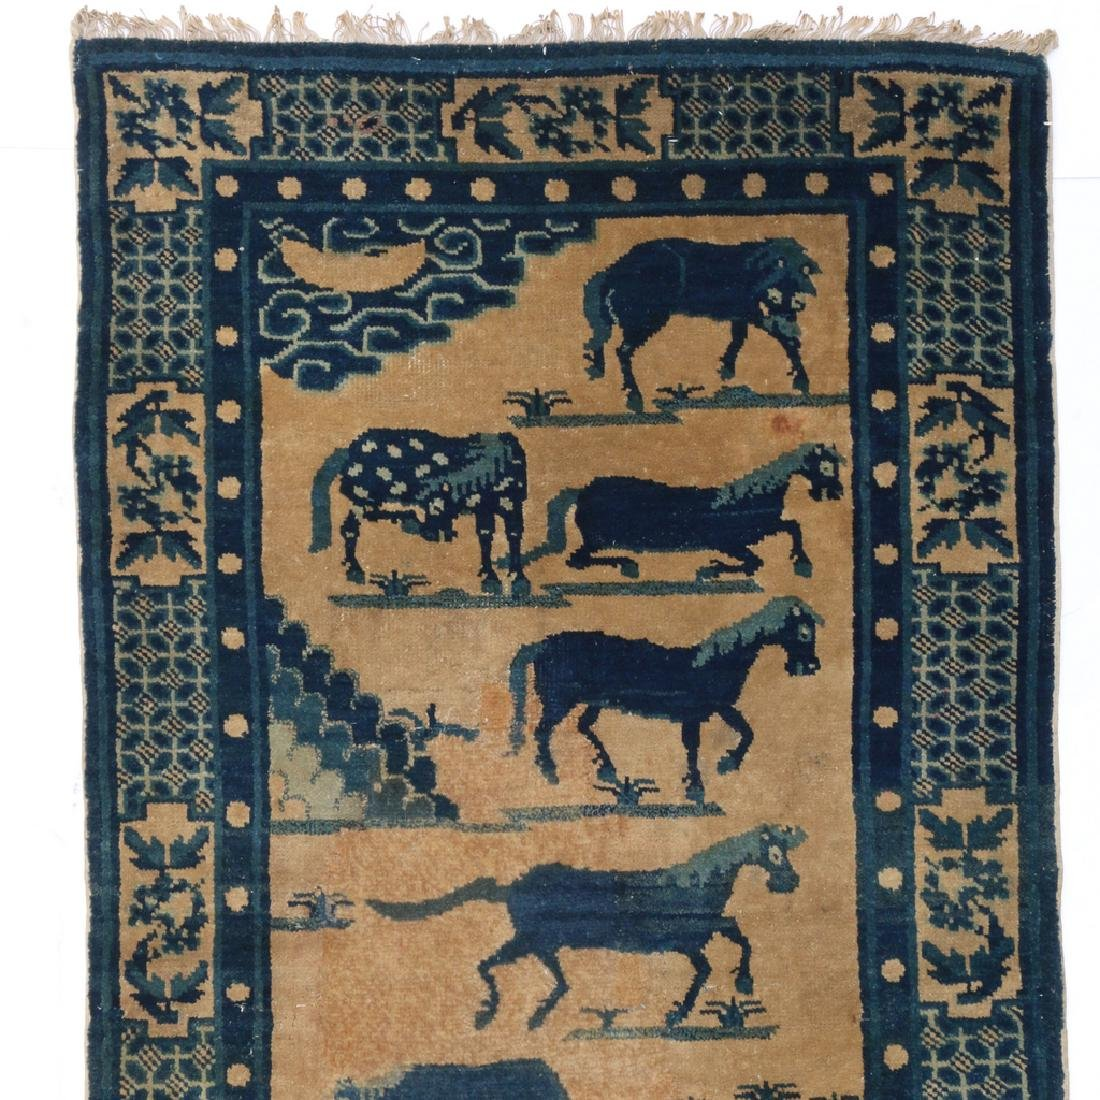 (2pc) ANTIQUE CHINESE PICTORIAL RUGS - 6